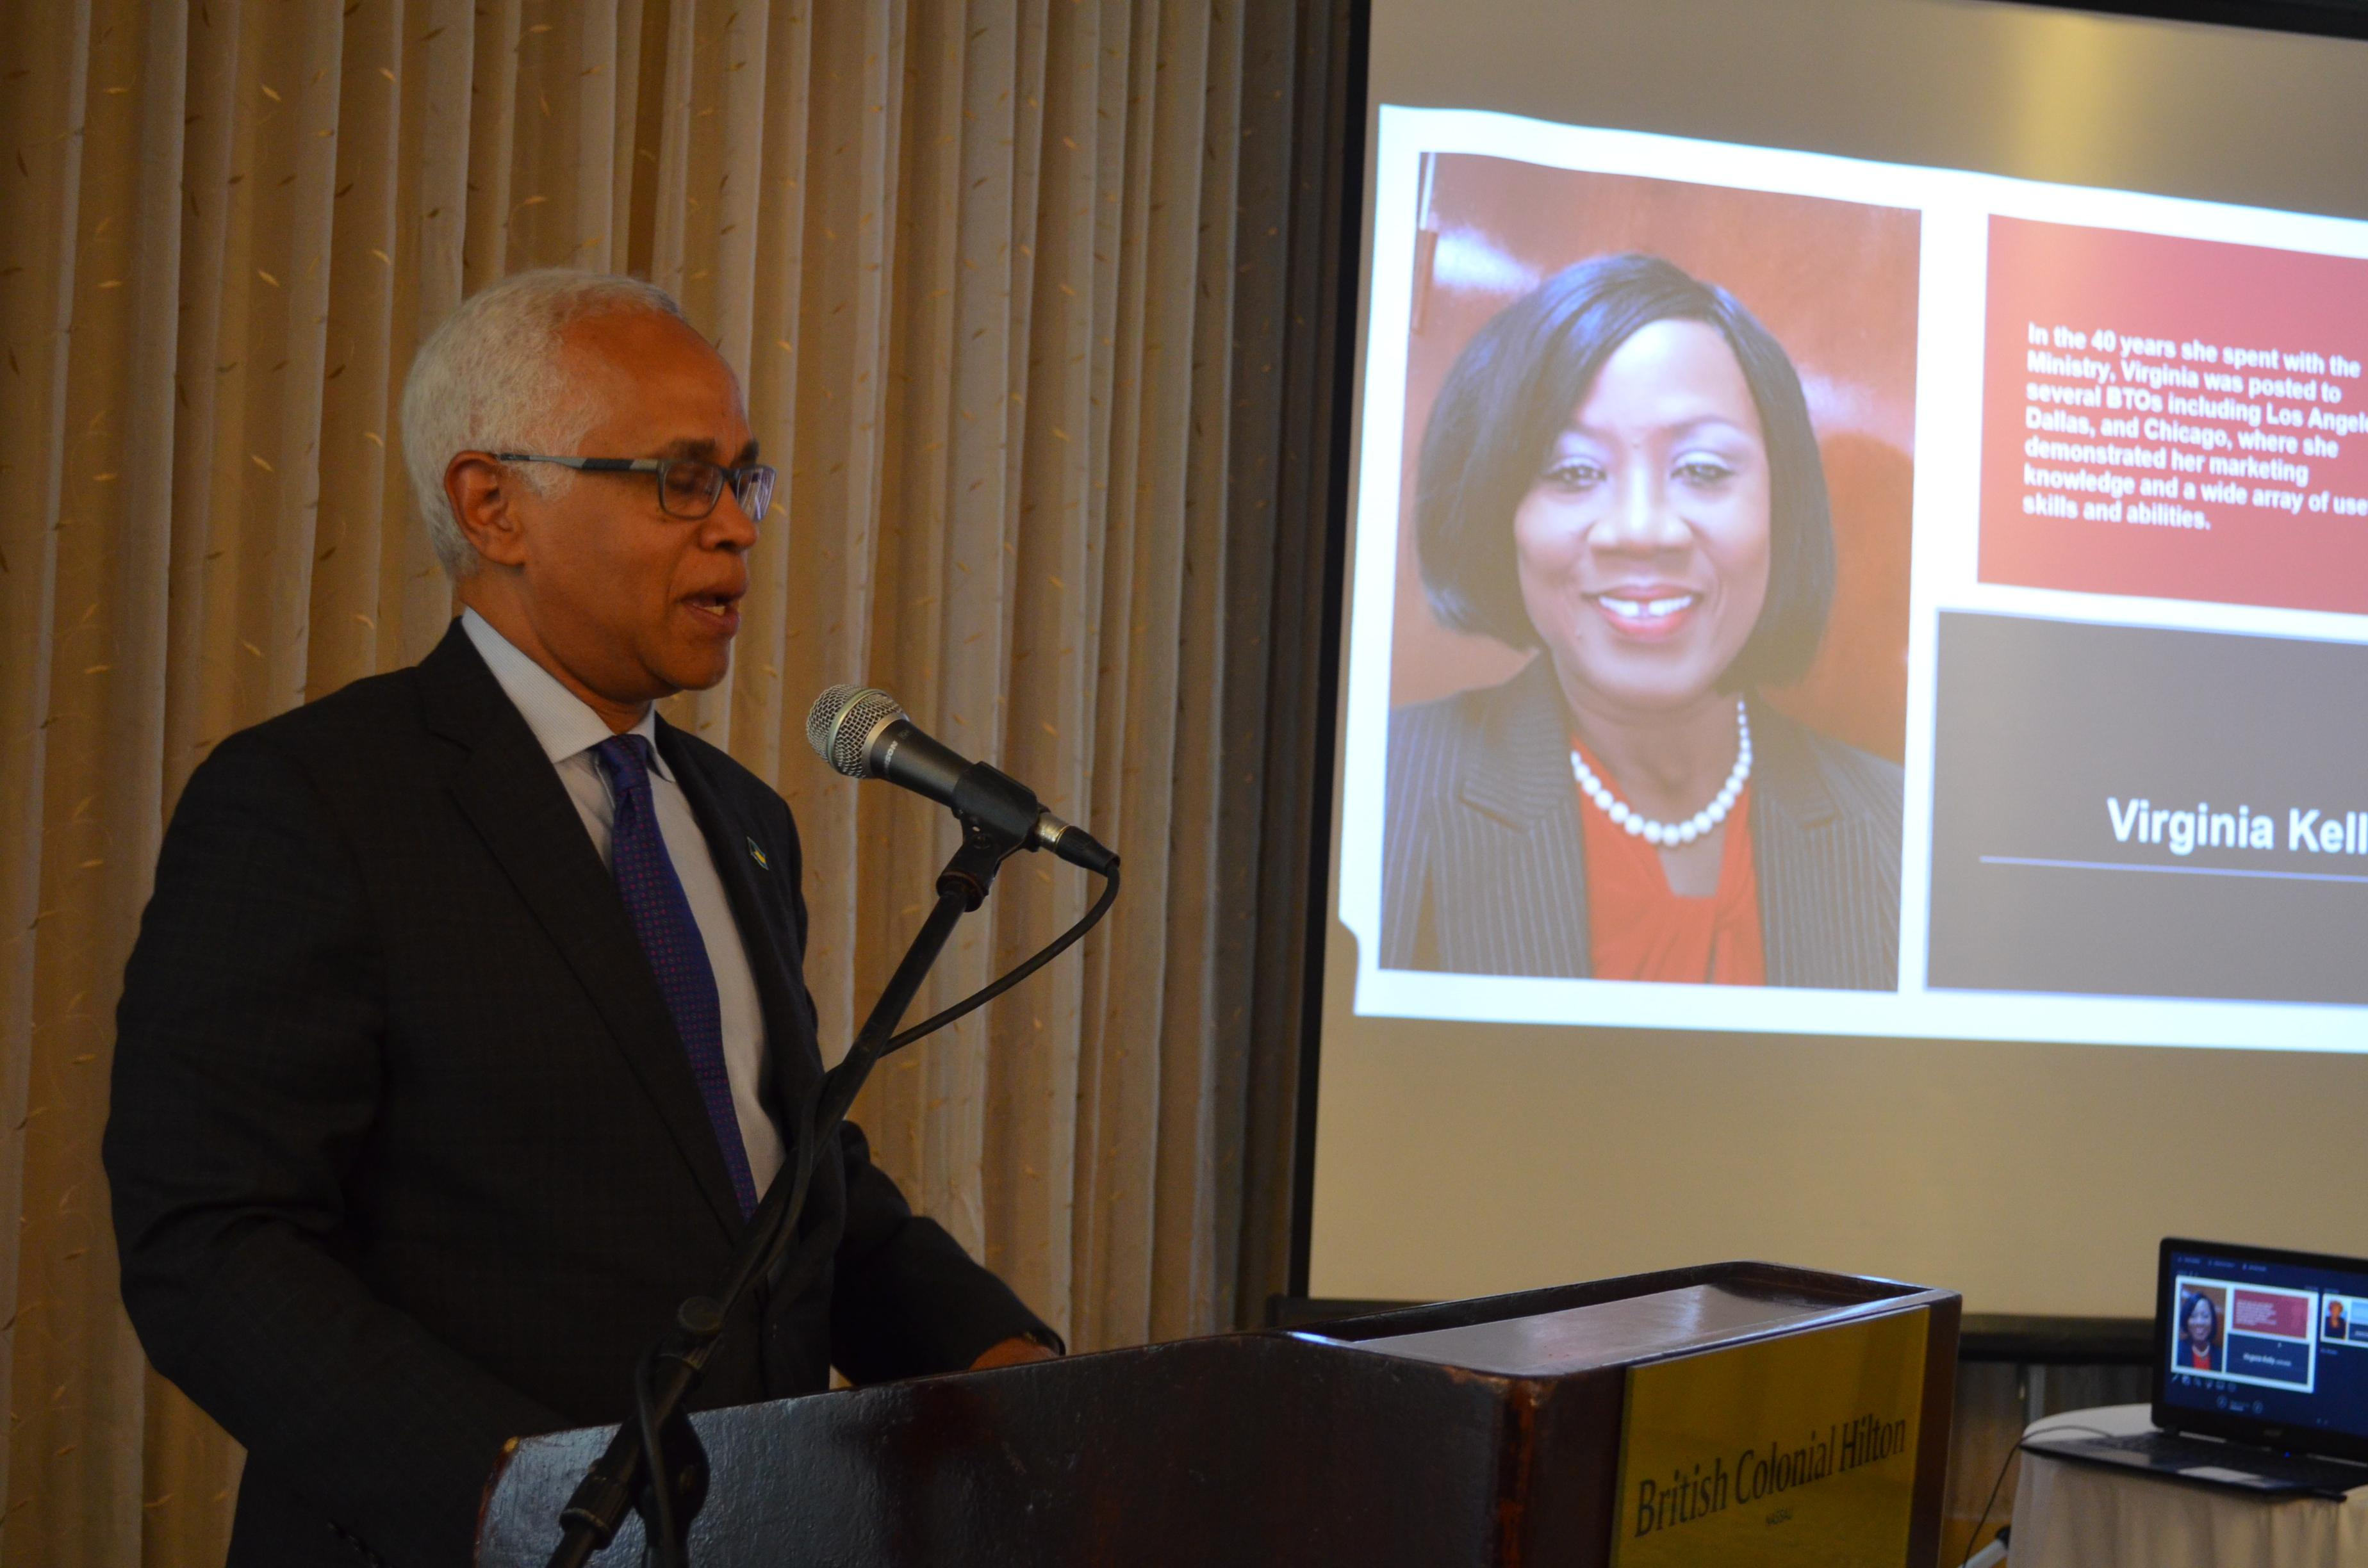 Minister of Tourism, Hon. Dionisio D'Aguilar shares farewell remarks at the ceremony and luncheon